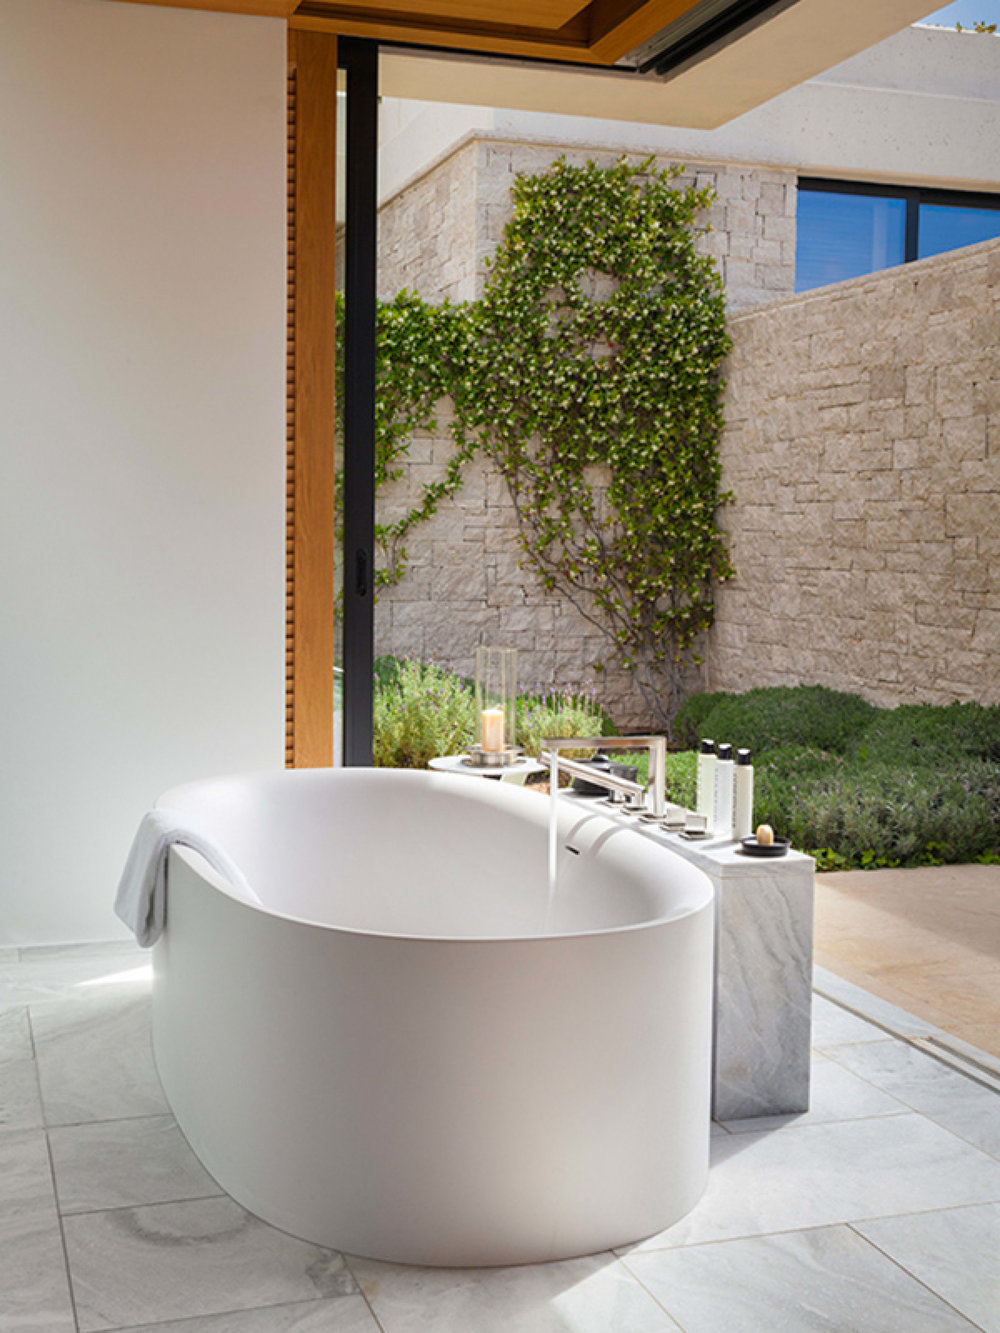 amanzoe-villas-bathroom-600x800.jpg